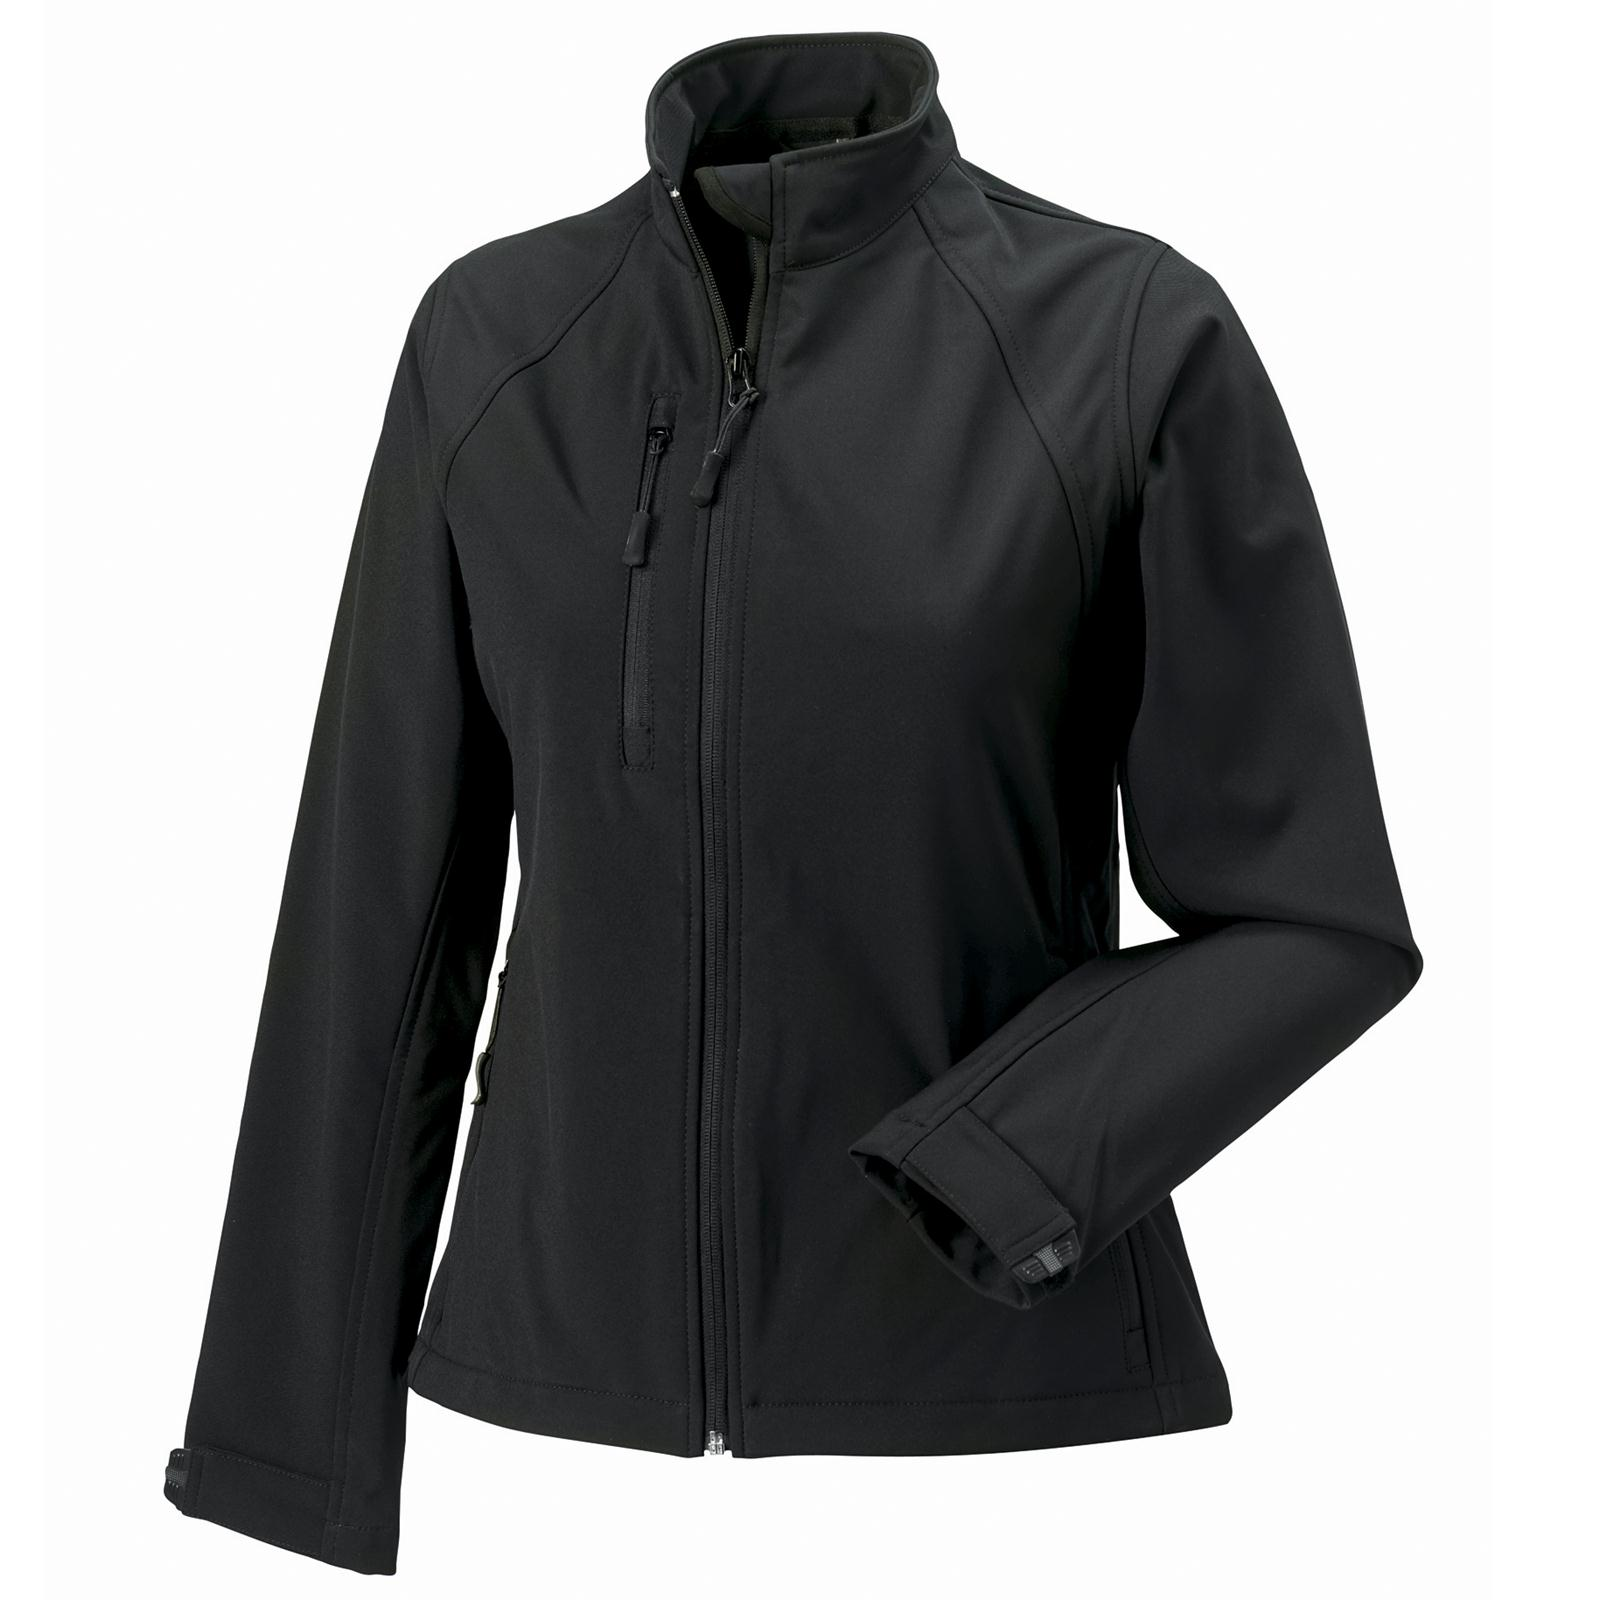 new russell ladies soft shell jacket in 6 colours xs 4xl ebay. Black Bedroom Furniture Sets. Home Design Ideas